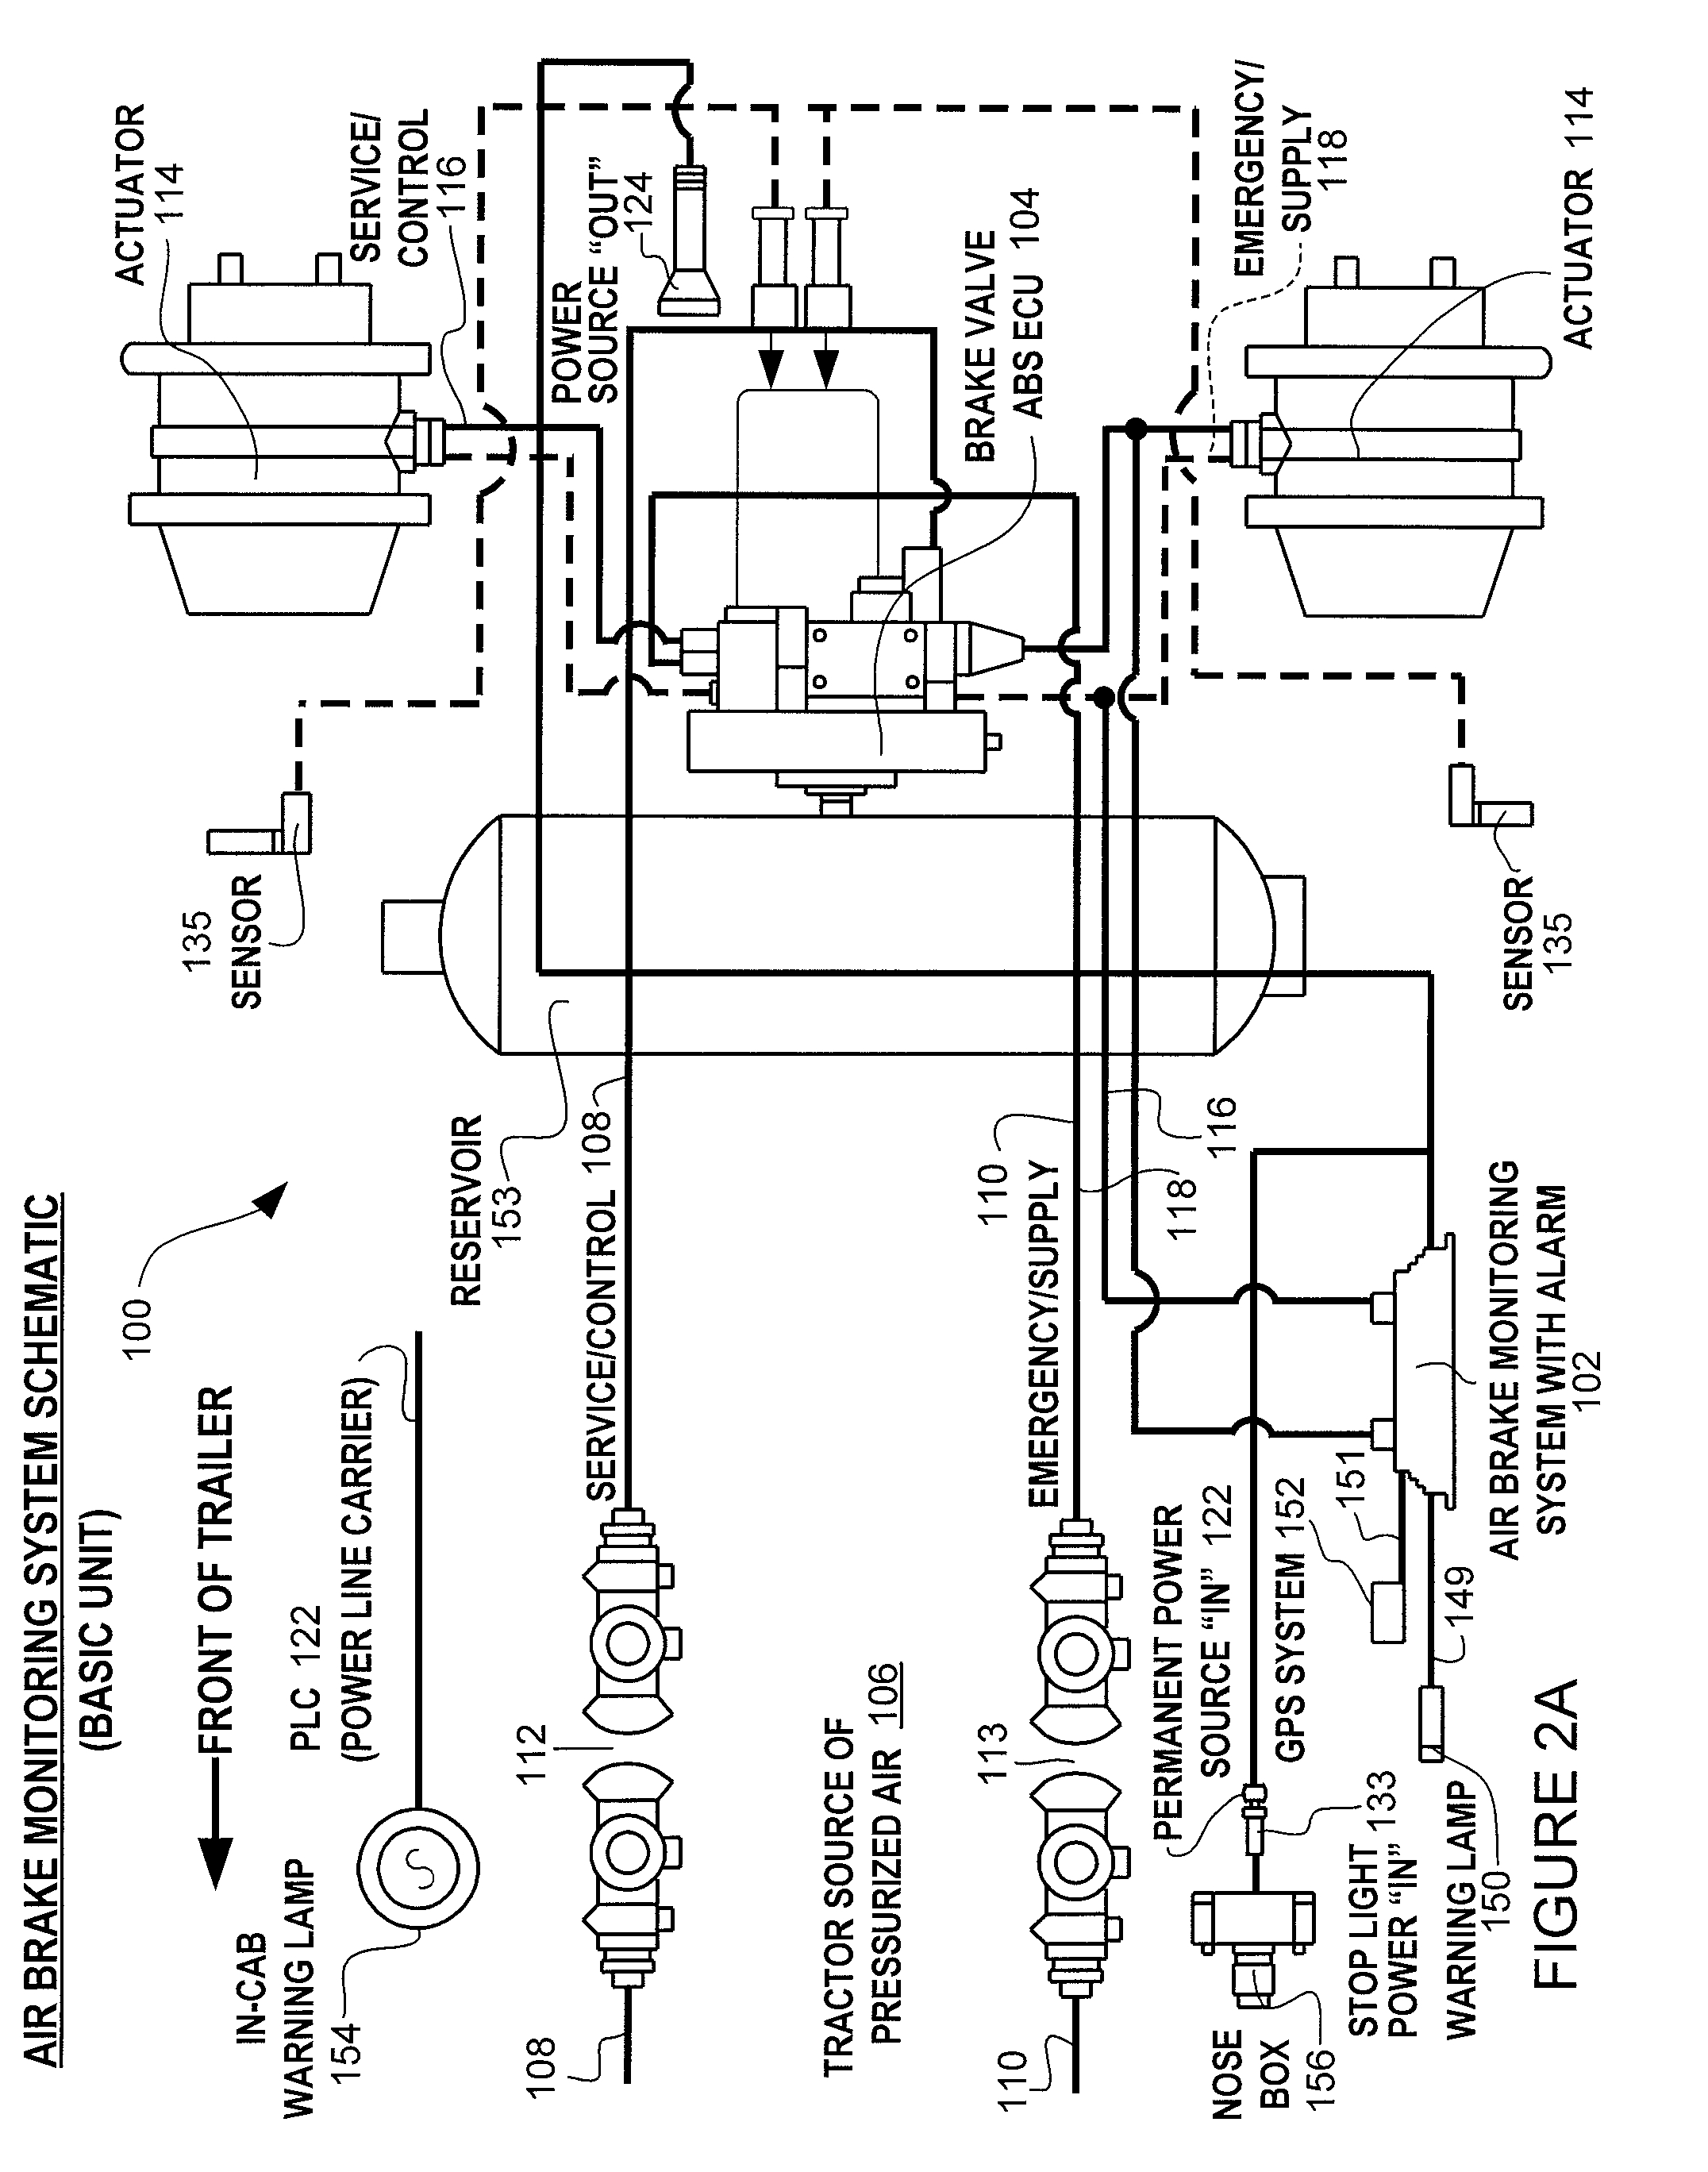 Wabco Trailer Abs Wiring Diagram - Great Installation Of Wiring - Wabco Abs Wiring Diagram